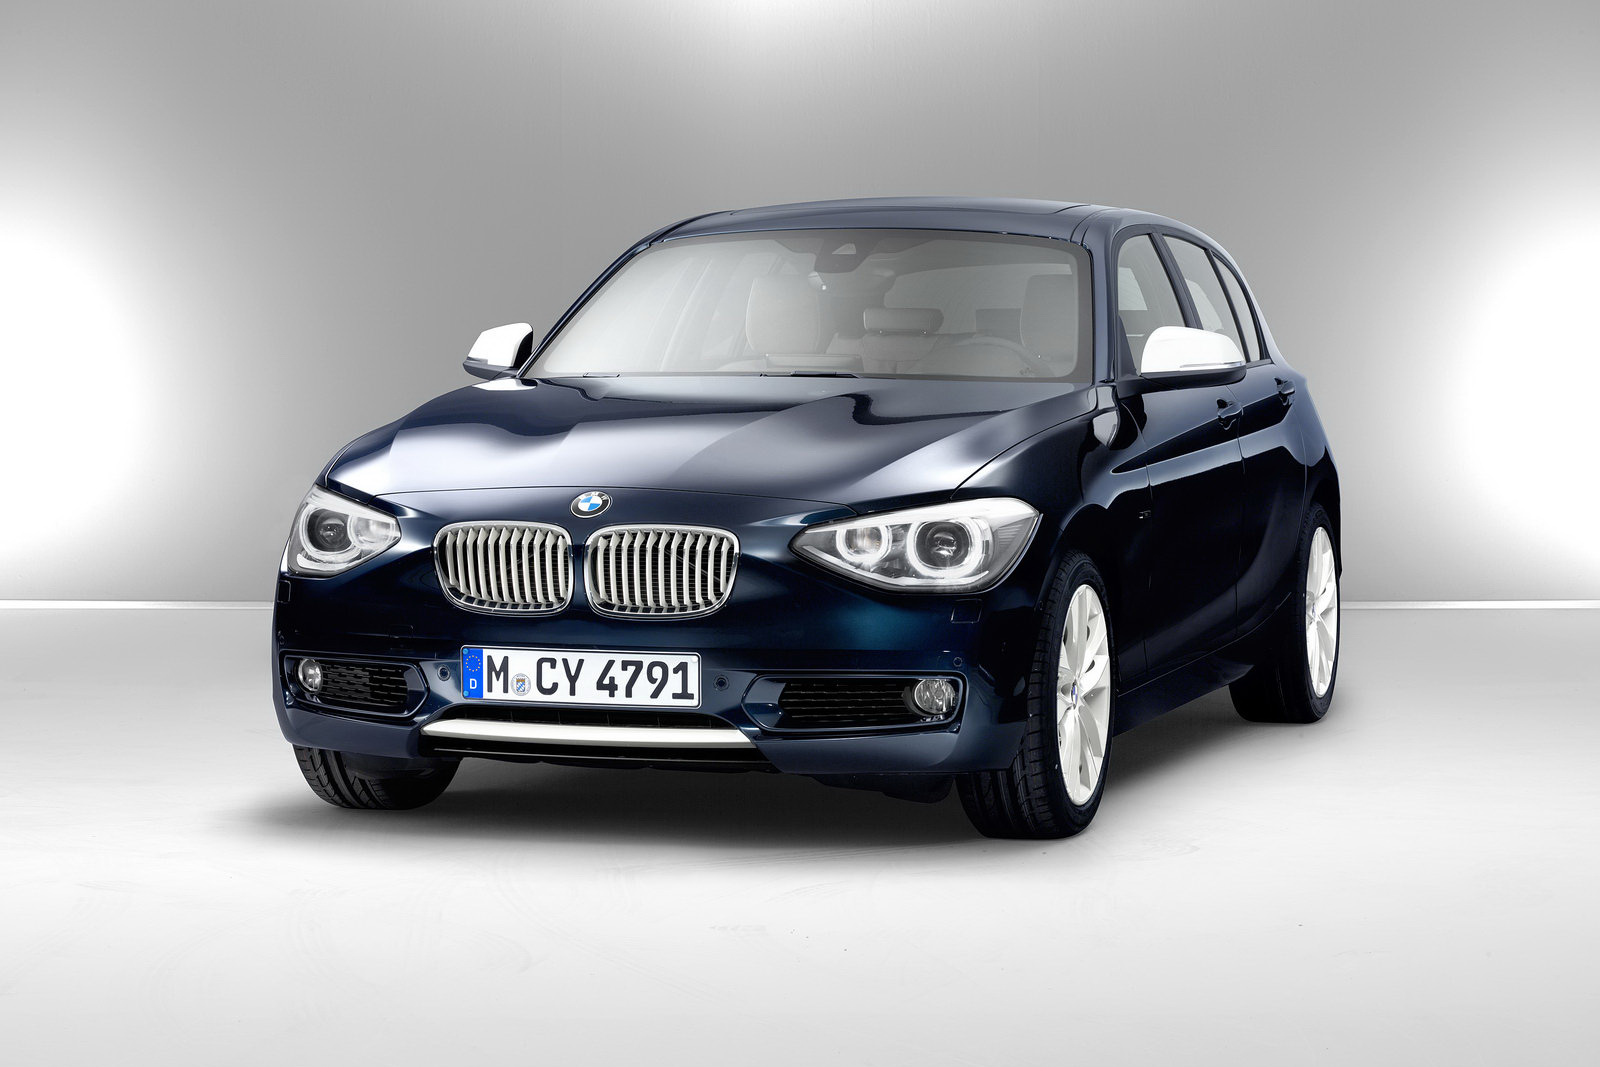 BMW 1 series 135is 2012 photo - 12